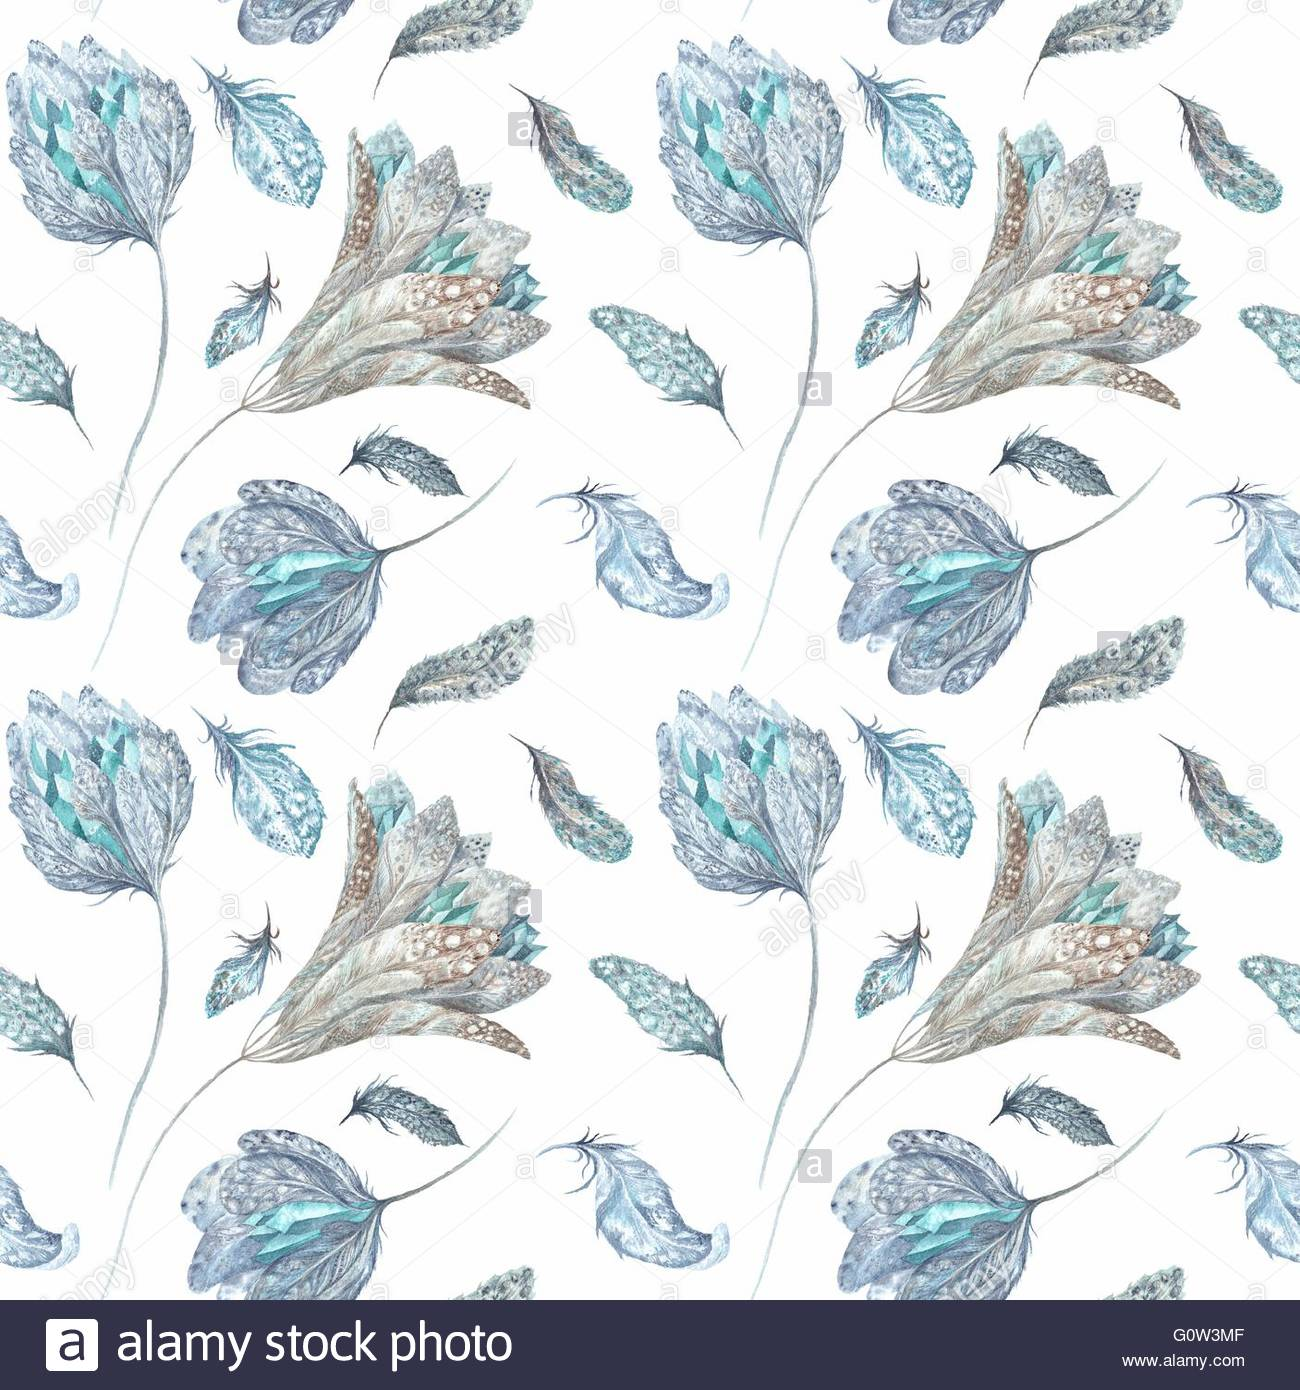 Seamless texture with feathers flowers and crystals isolated on 1300x1390